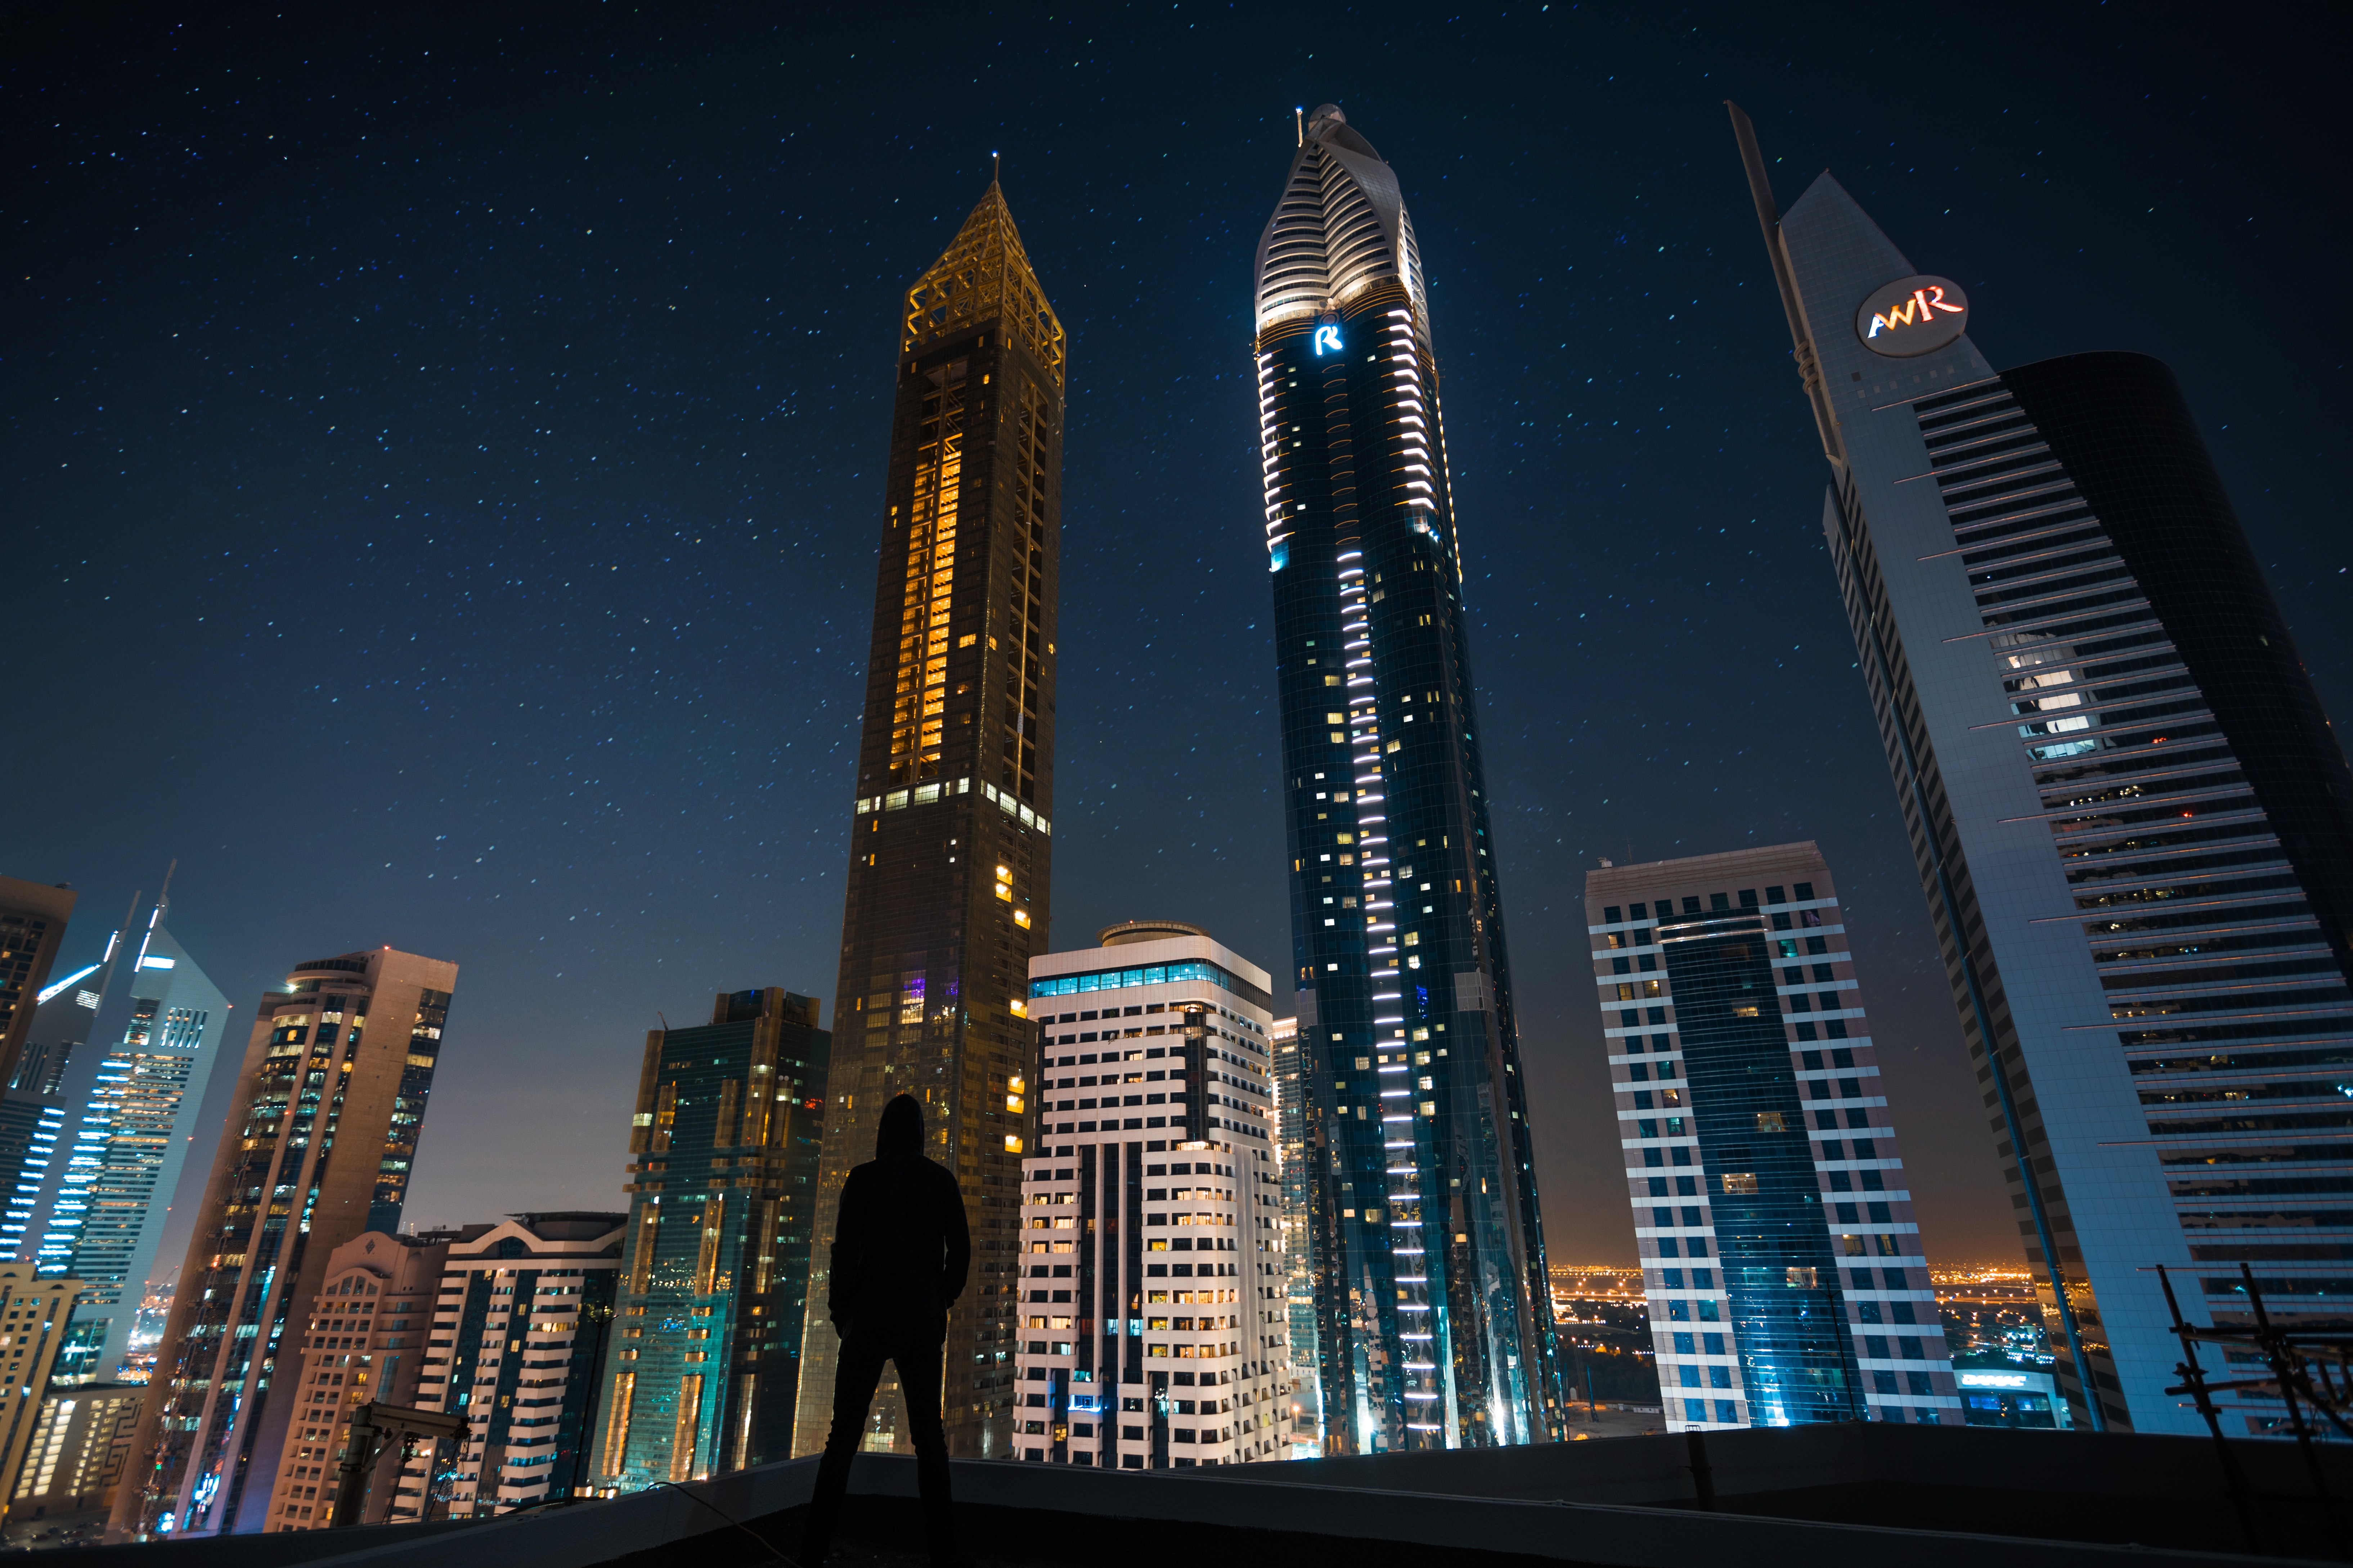 Man standing in assorted building string light during night time photo